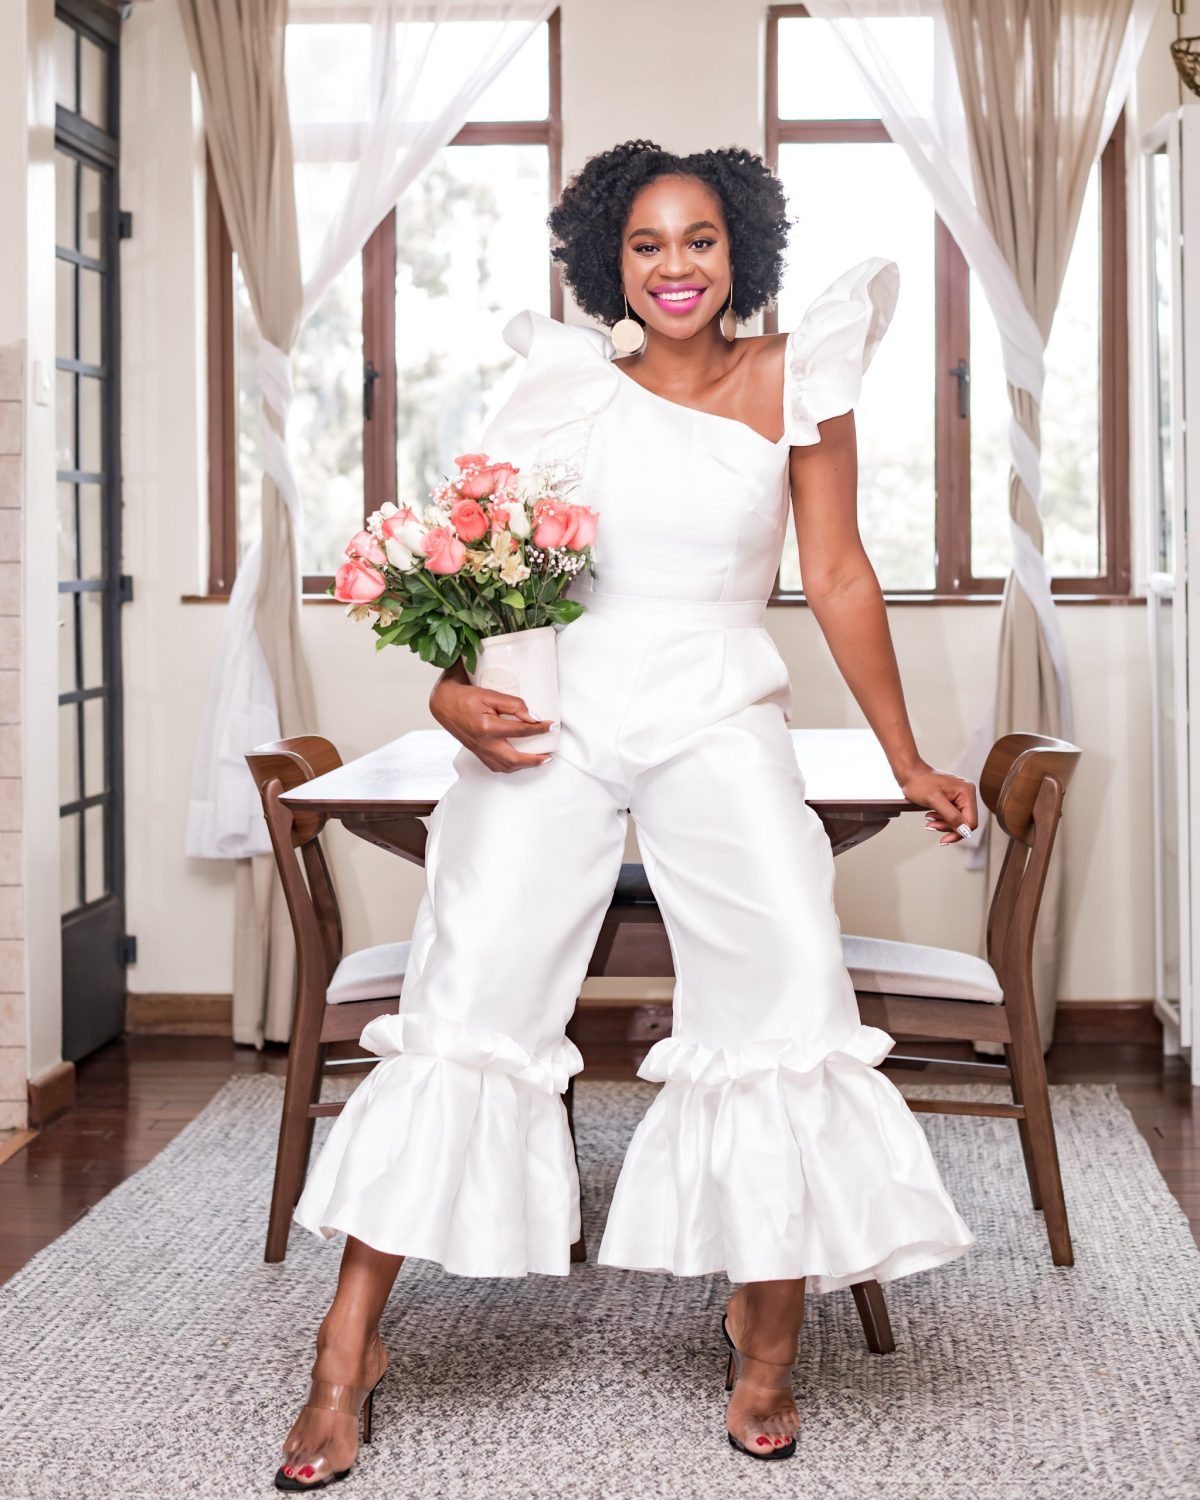 Ijeoma Kola in white outfit and flowers in a bouquet